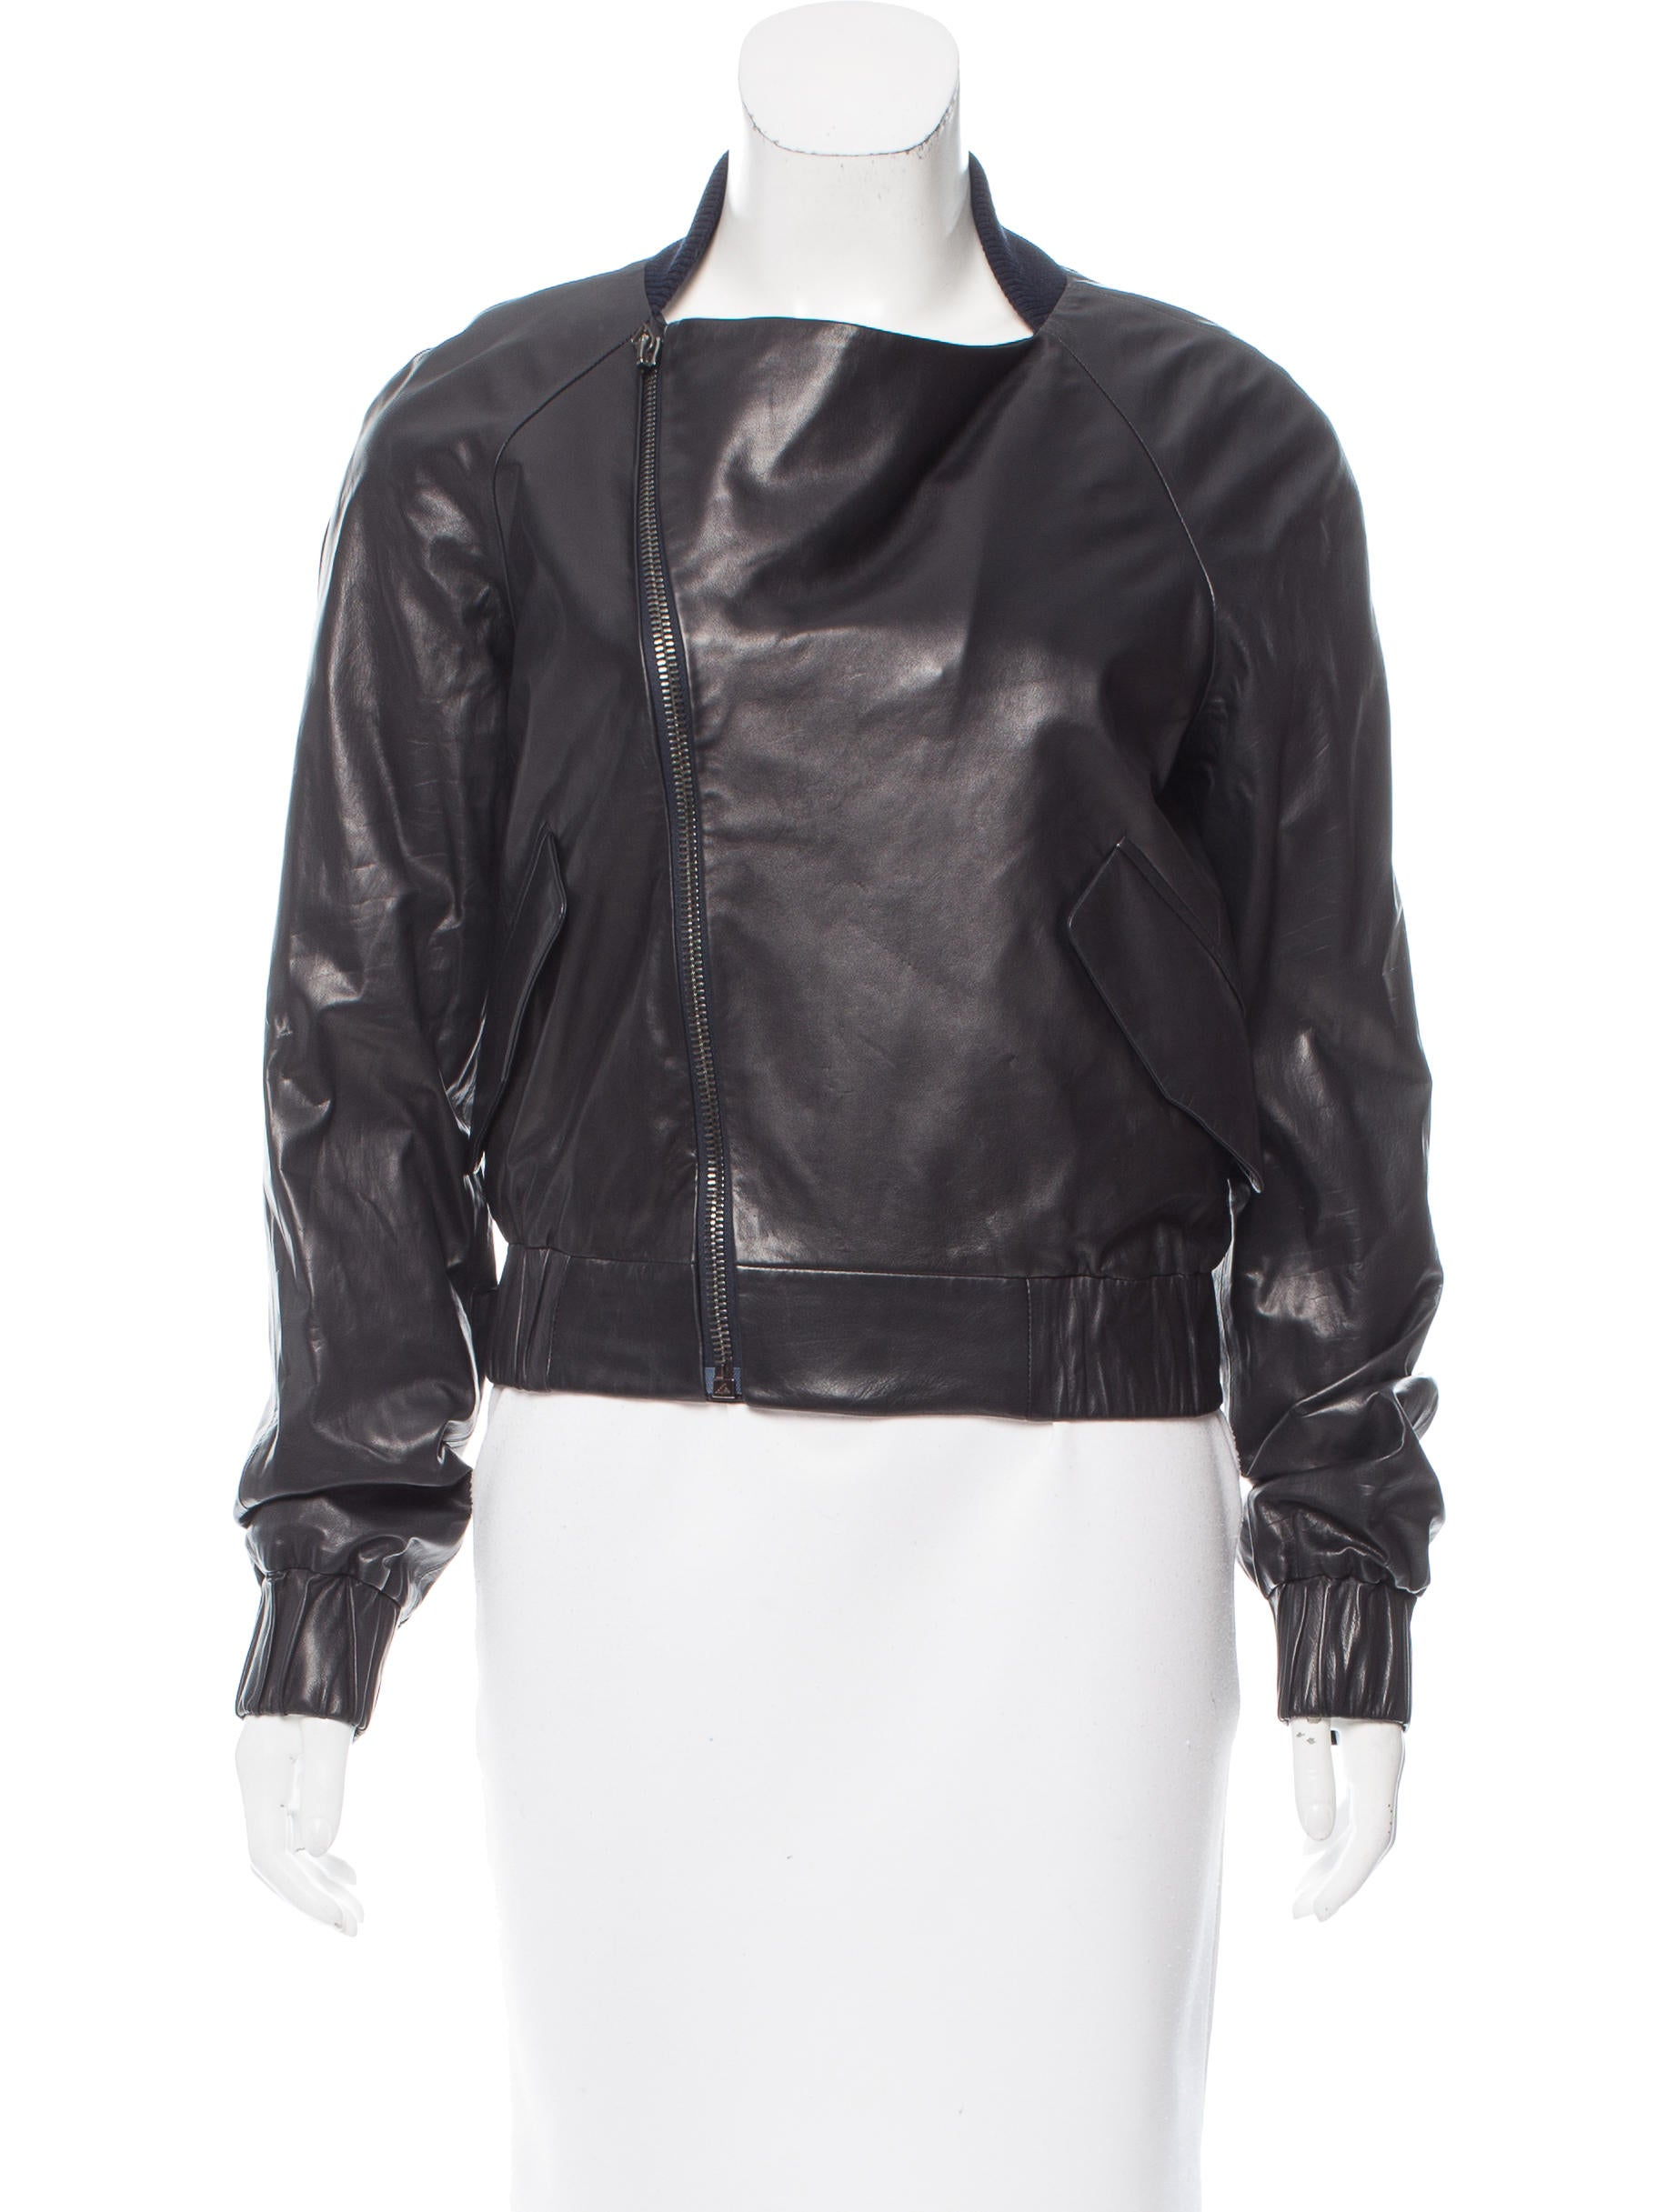 Reed leather jackets